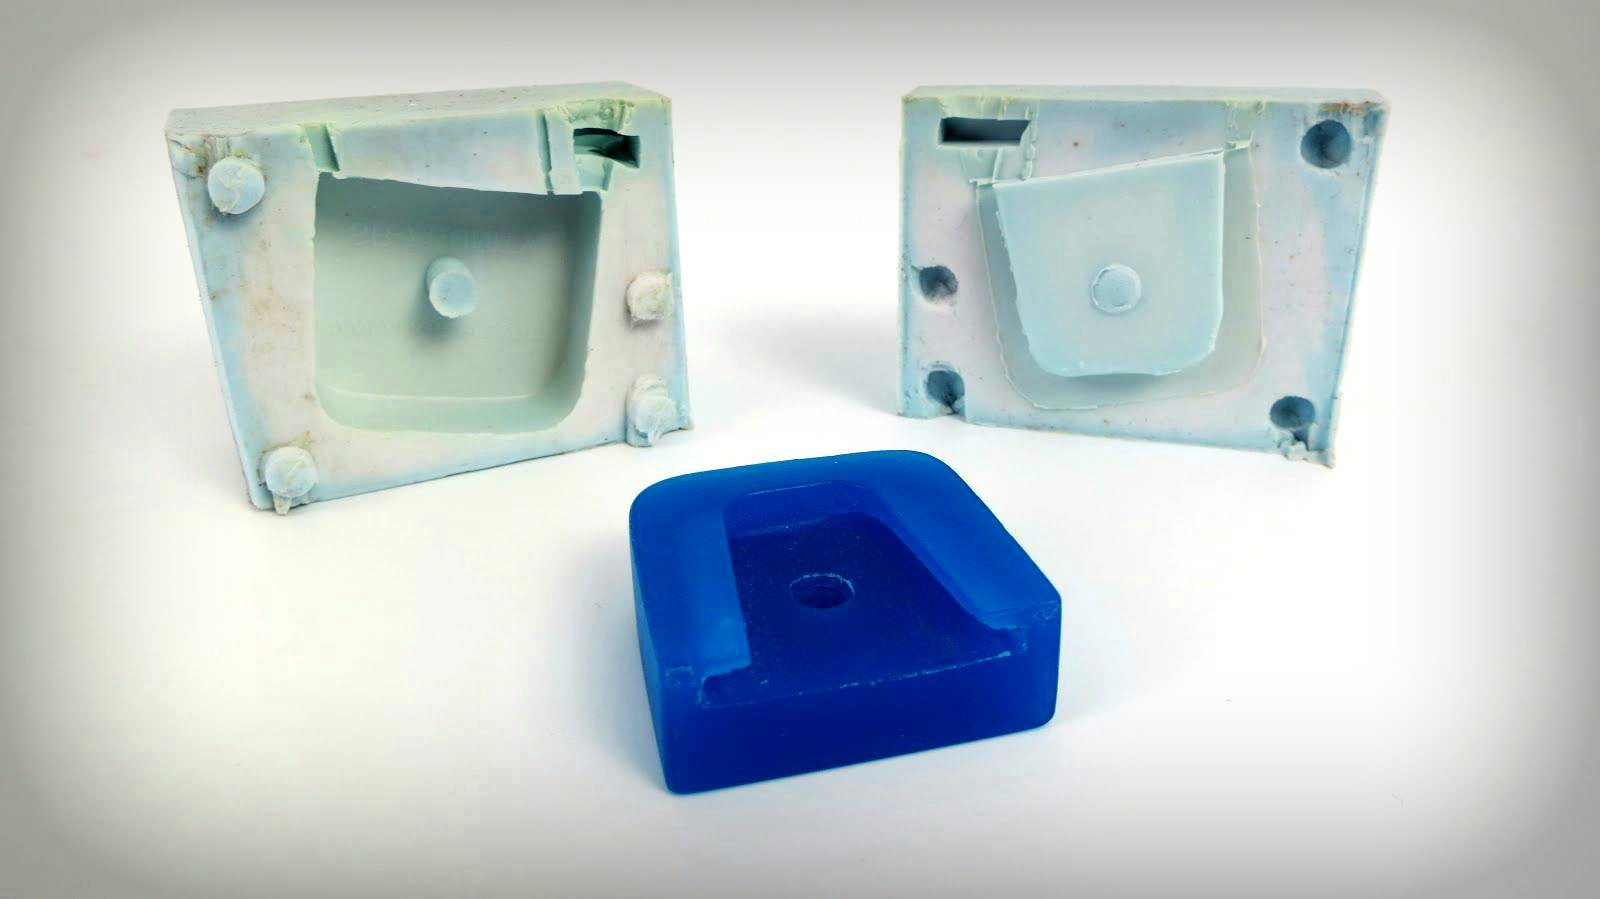 How To Rock Two-Part Silicon Mold Making [Part 2] - SolidSmack